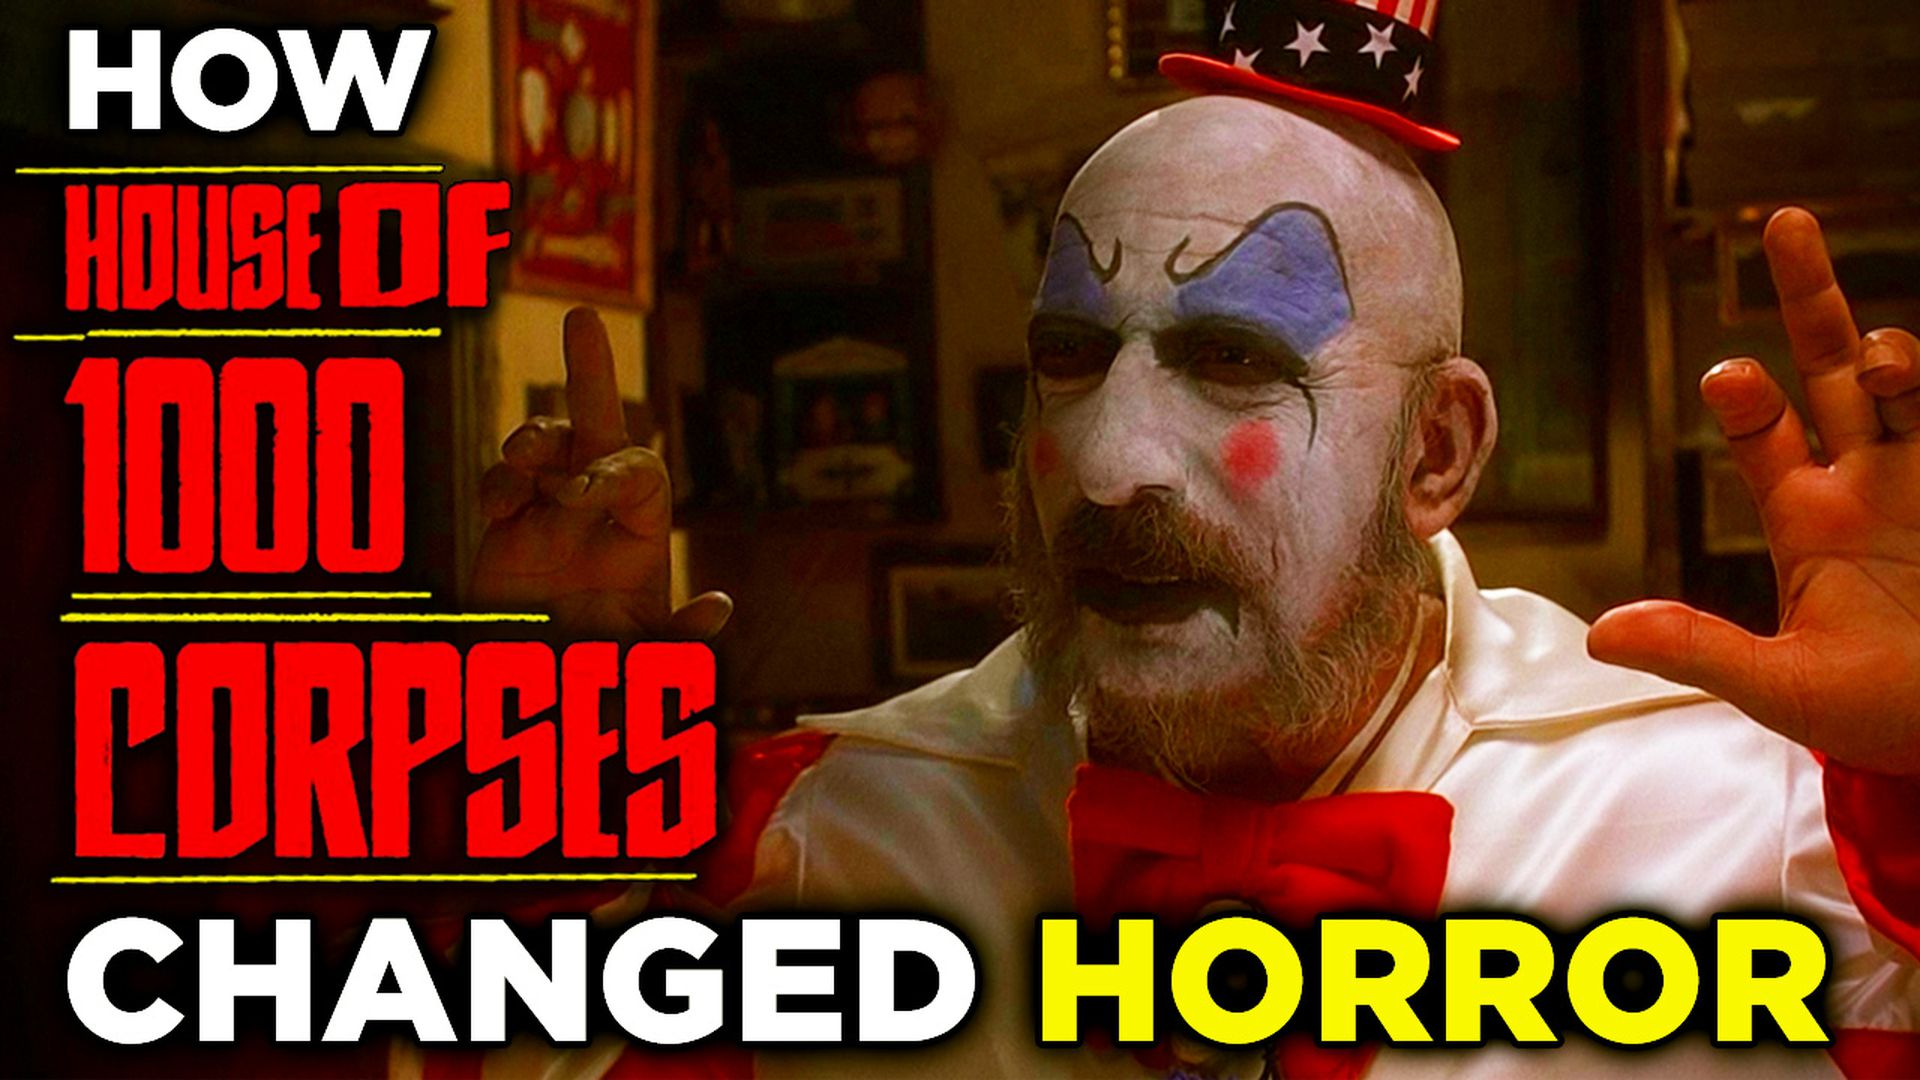 House Of 1000 Corpses Was The Resurrection Horror Needed After The